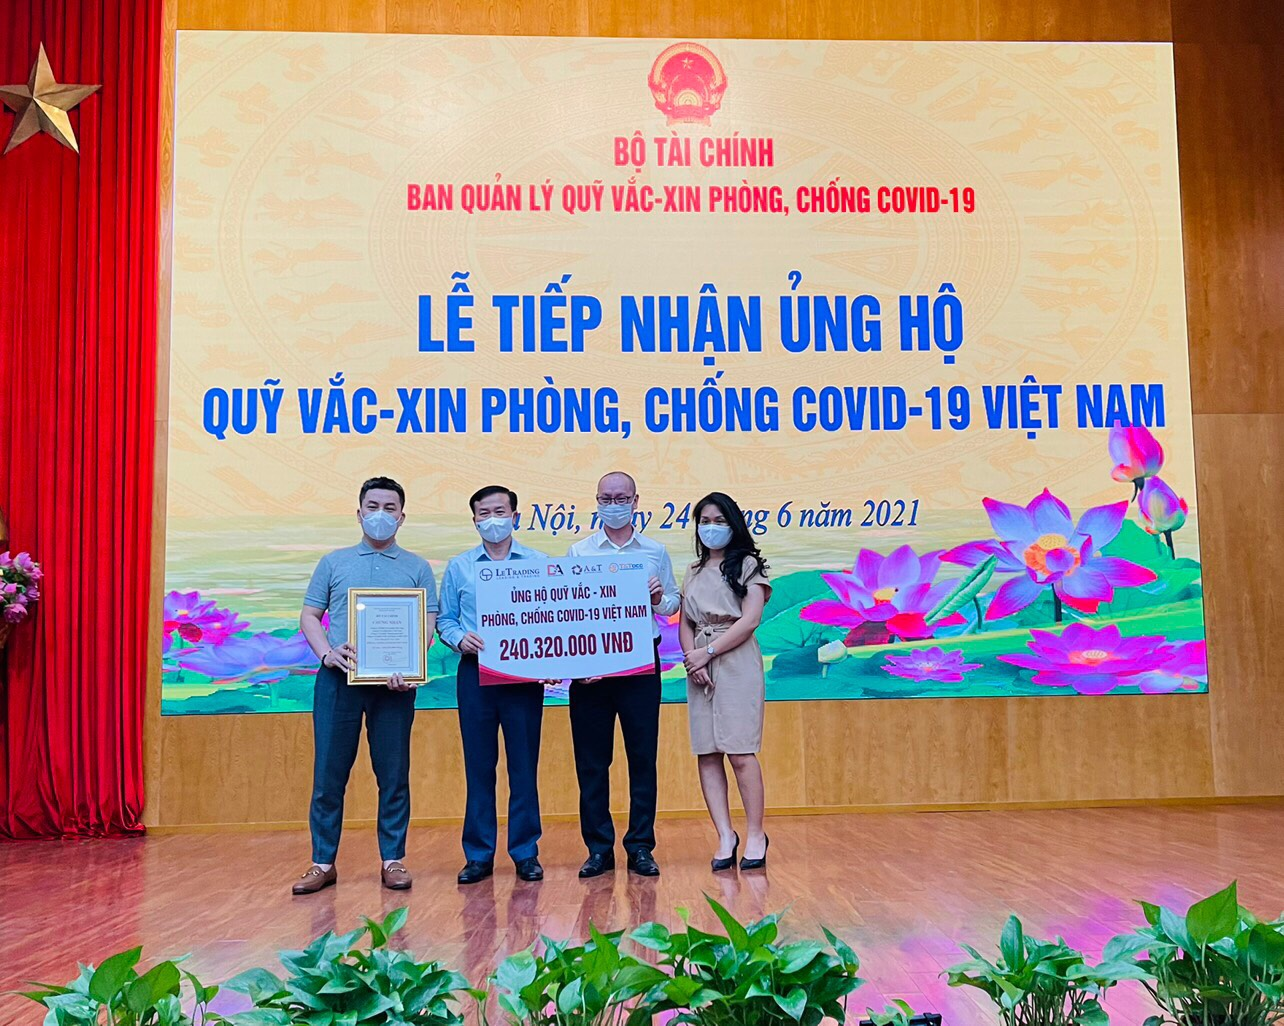 A&T joints with Letrading, D&A and T&T OCG donated over 240 Million VNĐ to support the country in the fight against Covid-19.